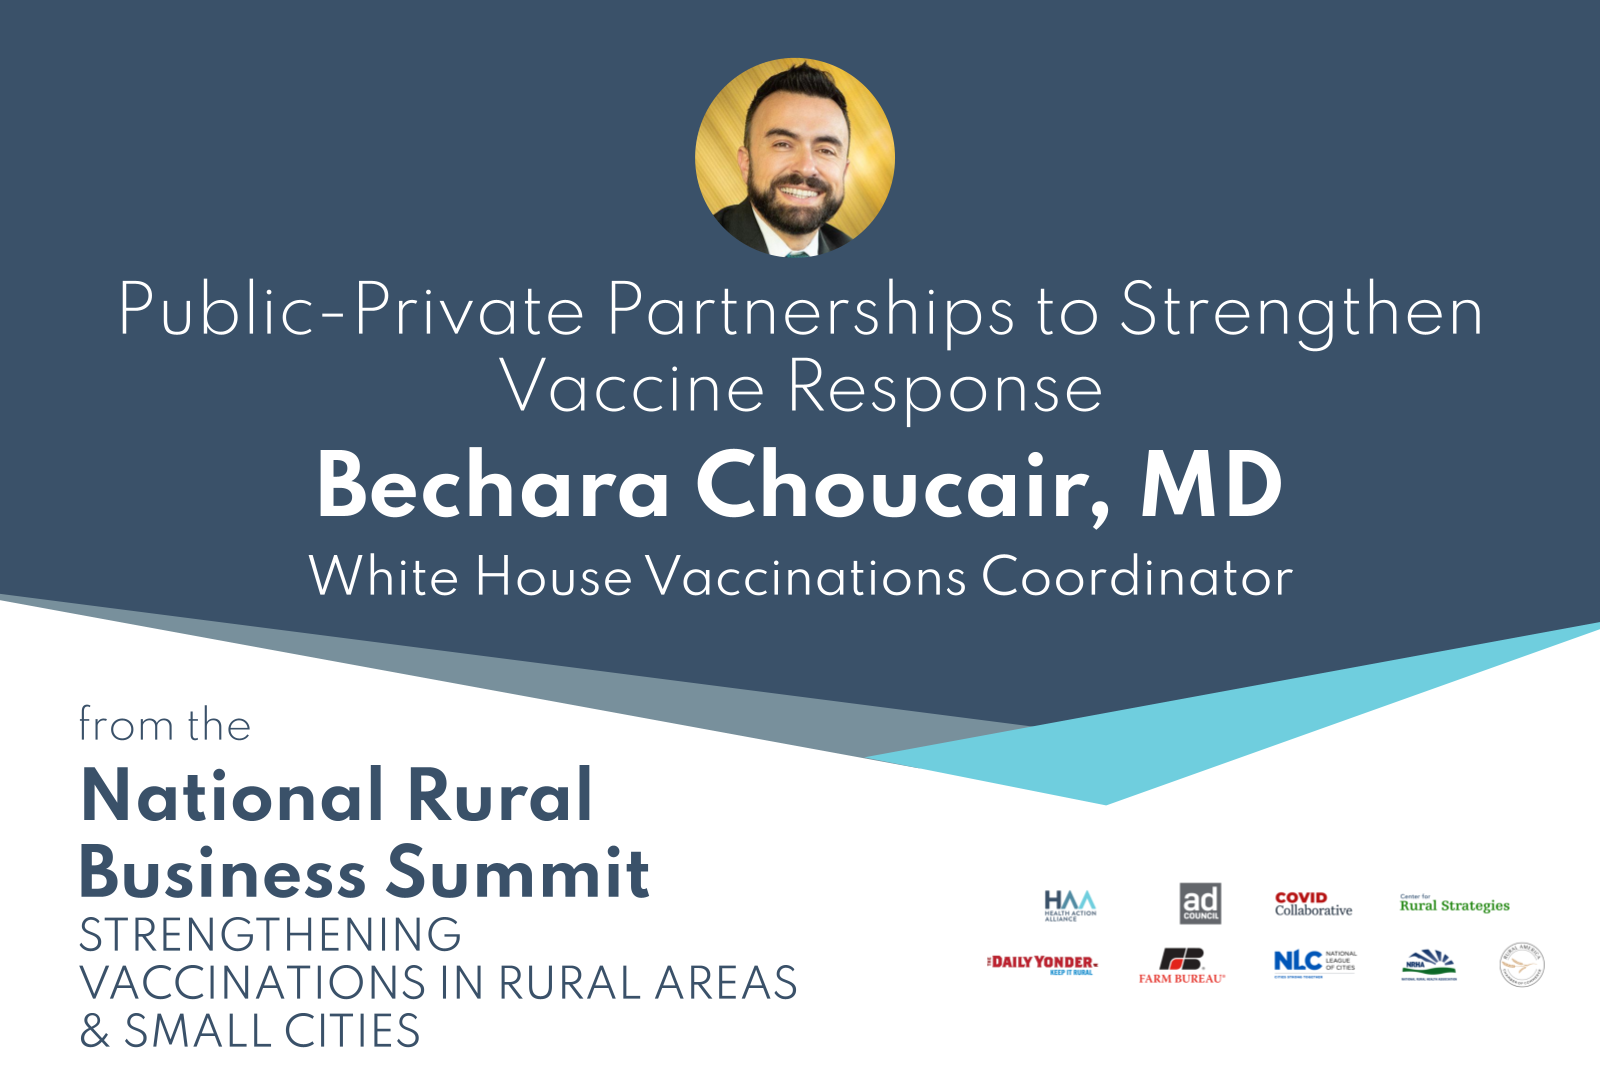 Bechara Choucair, MD – White House Vaccinations Coordinator